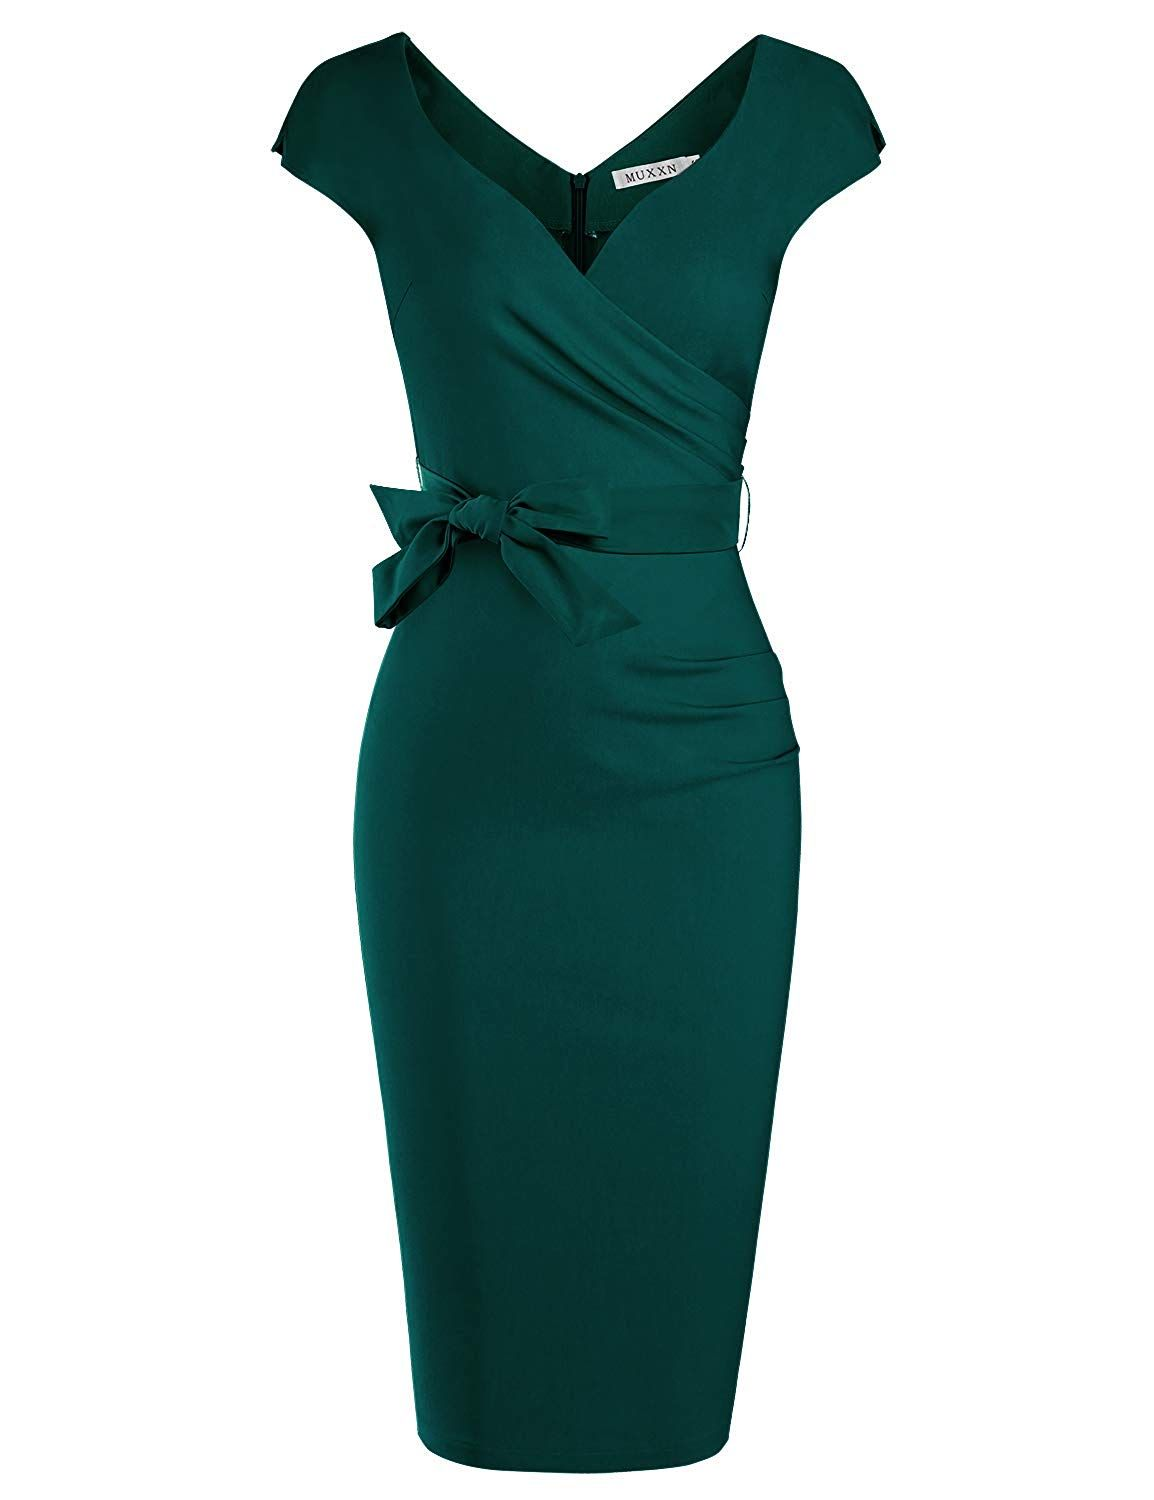 Muxxn Women S Vintage 1950s Style Wrap V Neck Tie Waist Formal Cocktail Dress More Information Can Be Loc Fashion Formal Cocktail Dress Dresses Casual Fall [ 1500 x 1154 Pixel ]